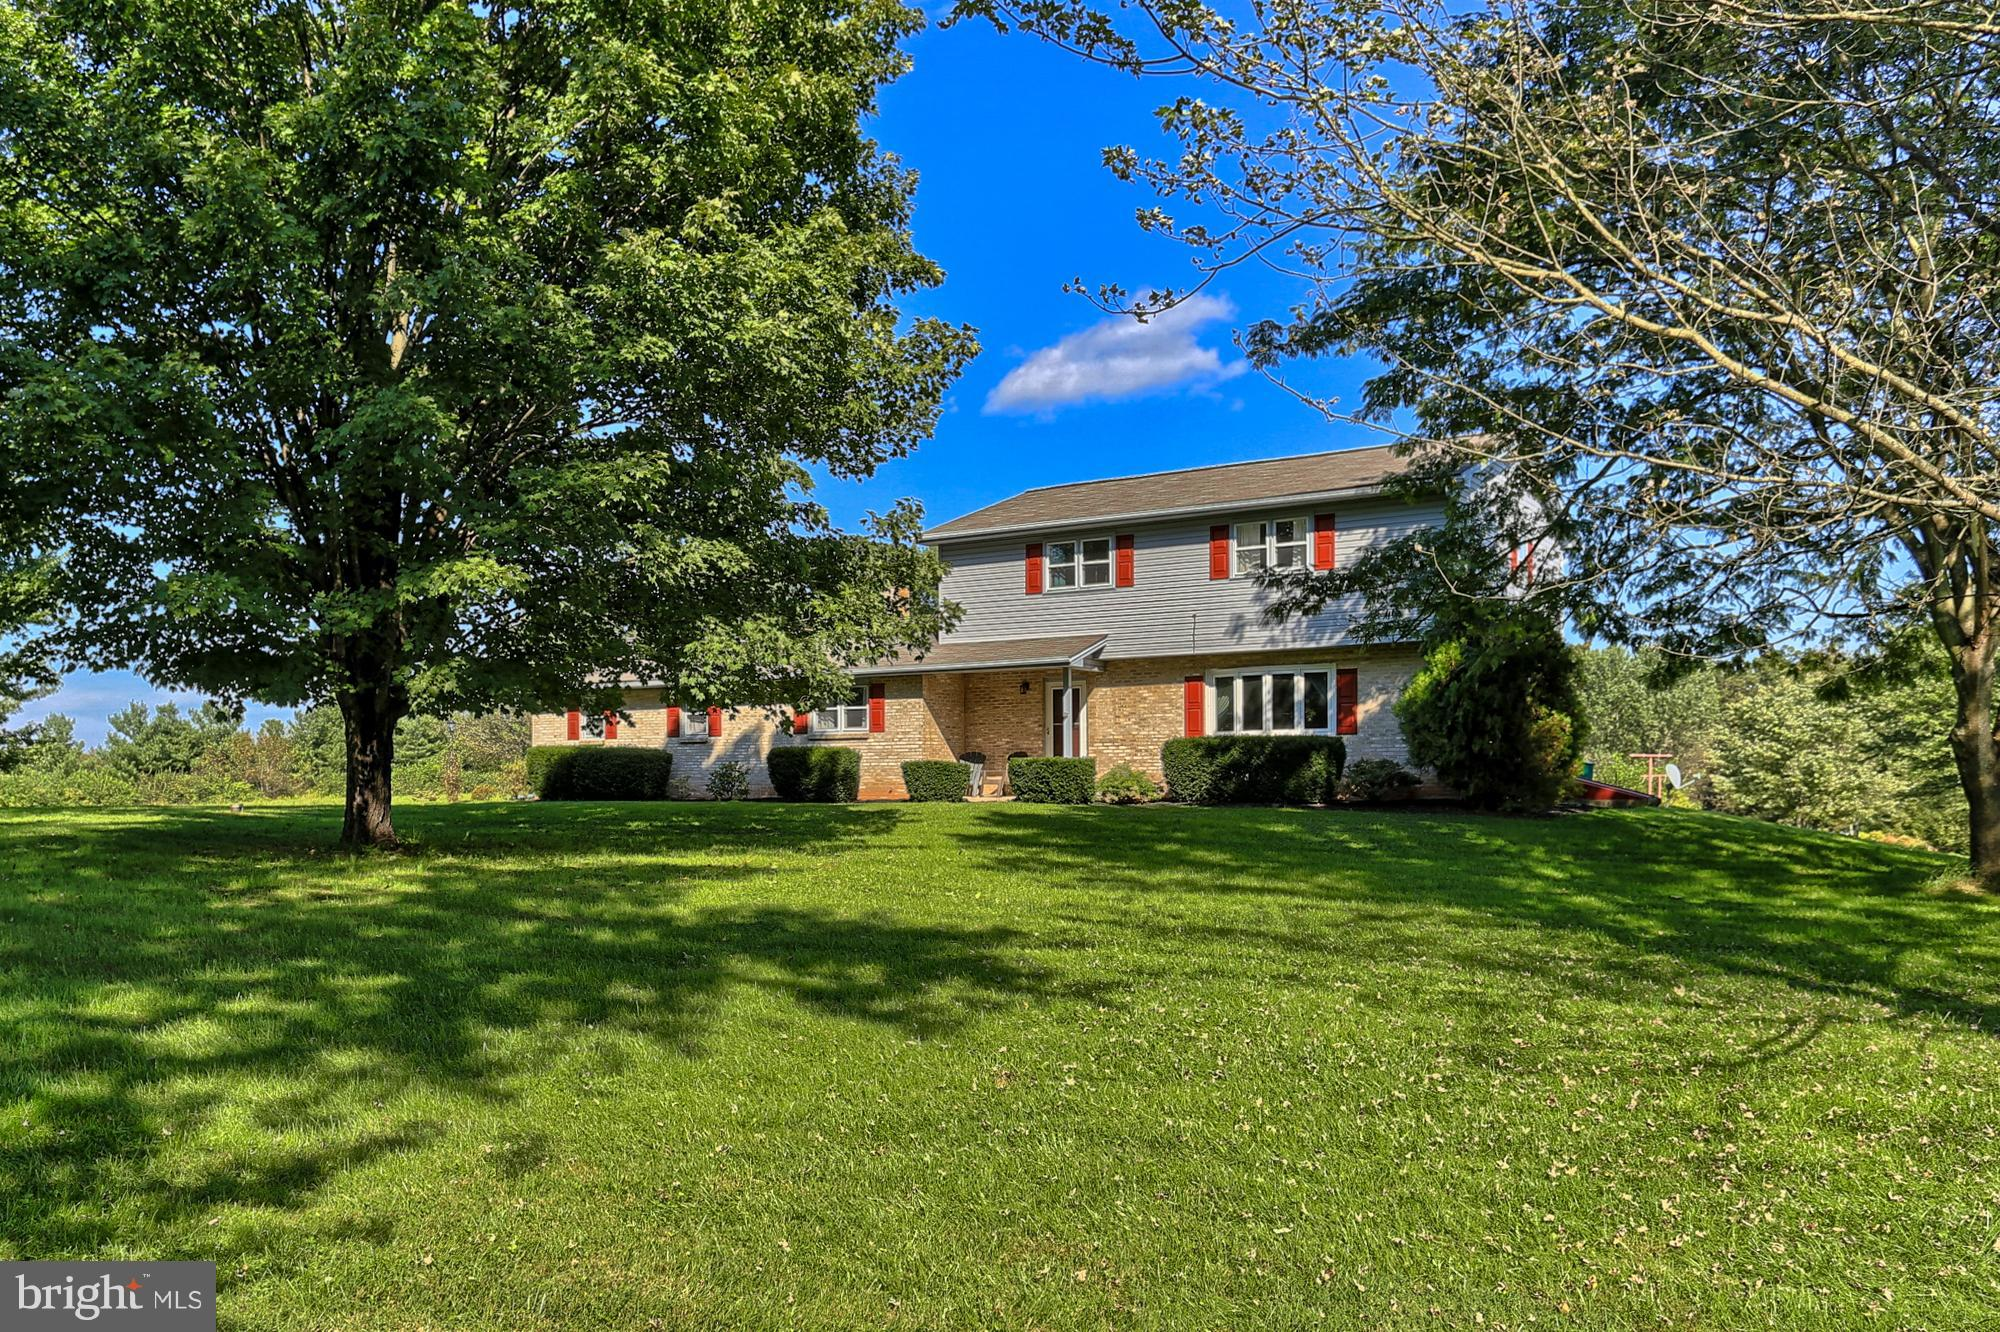 435 COUNTY LINE, YORK SPRINGS, PA 17372